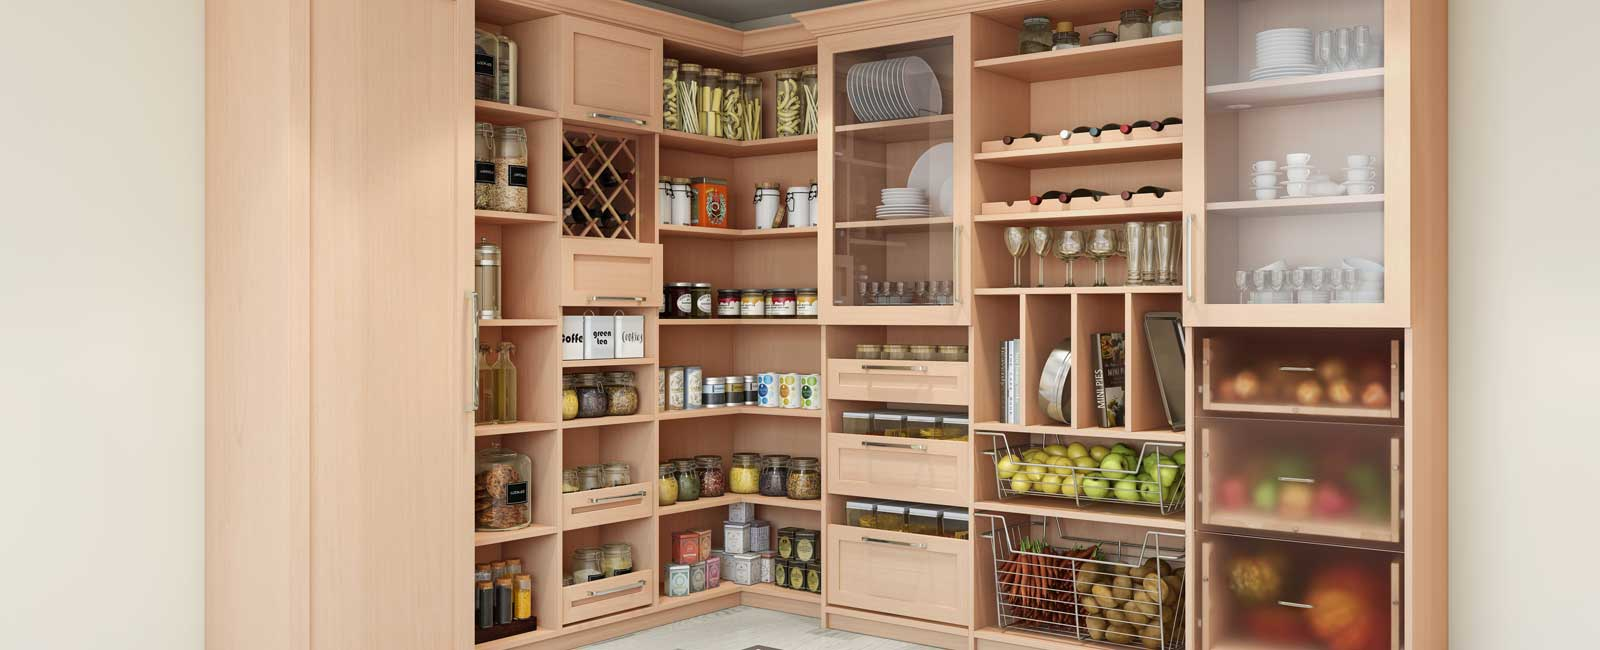 Closet Pantry Kitchen Pantry Closets And Cabinets Pantry Closet Organizers